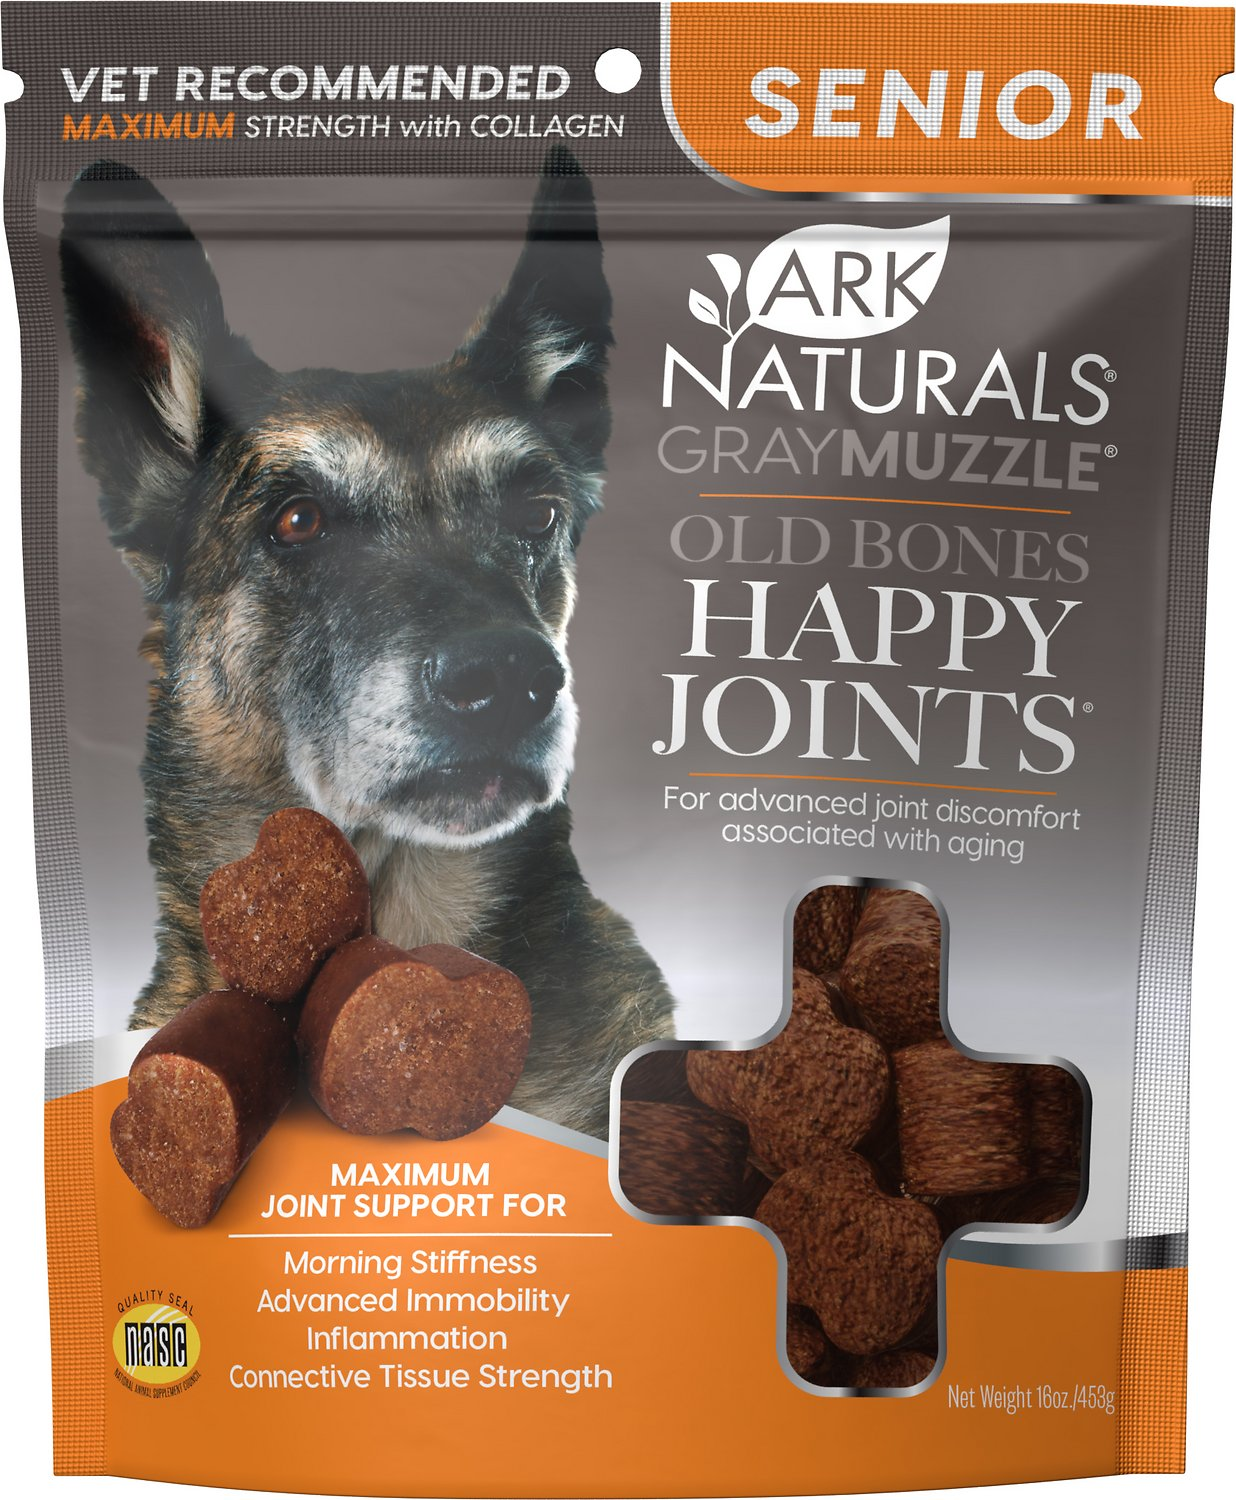 Ark Naturals Gray Muzzle Old Dogs! Happy Joints! Large Breed Maximum  Strength Dog Treats, 16-oz bag - Chewy.com